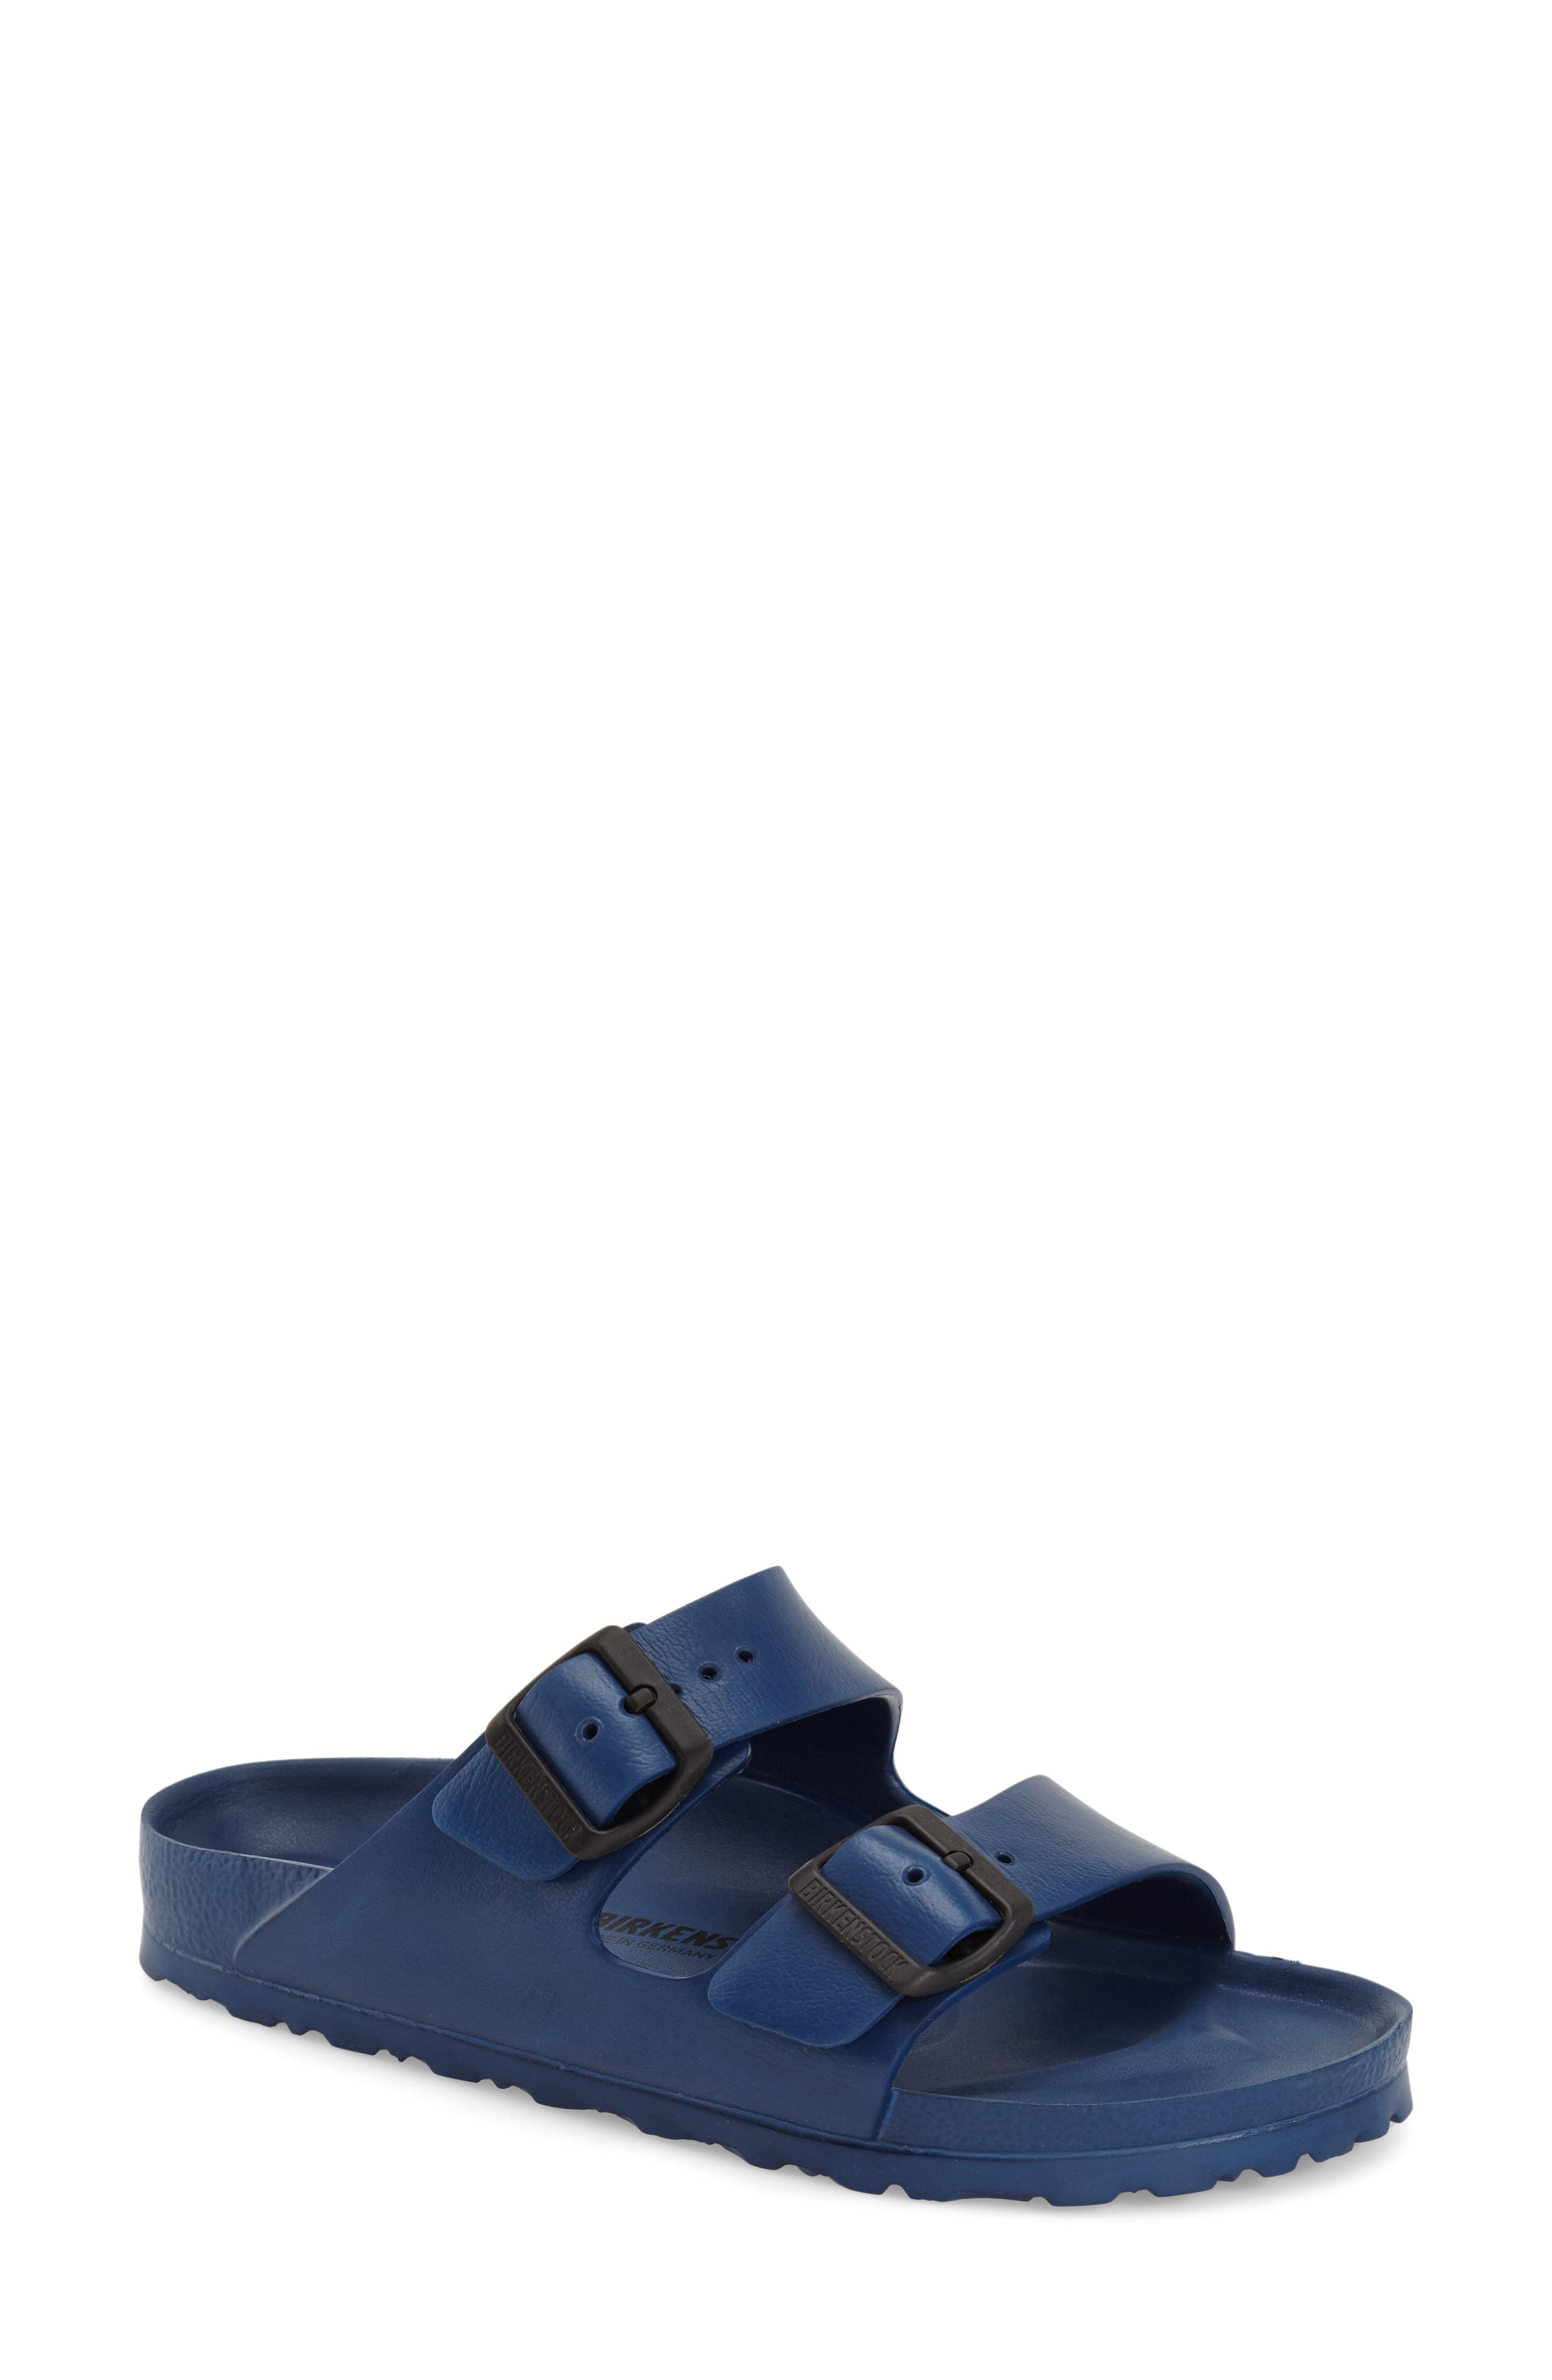 Essentials - Arizona Slide Sandal,                             Main thumbnail 1, color,                             NAVY EVA